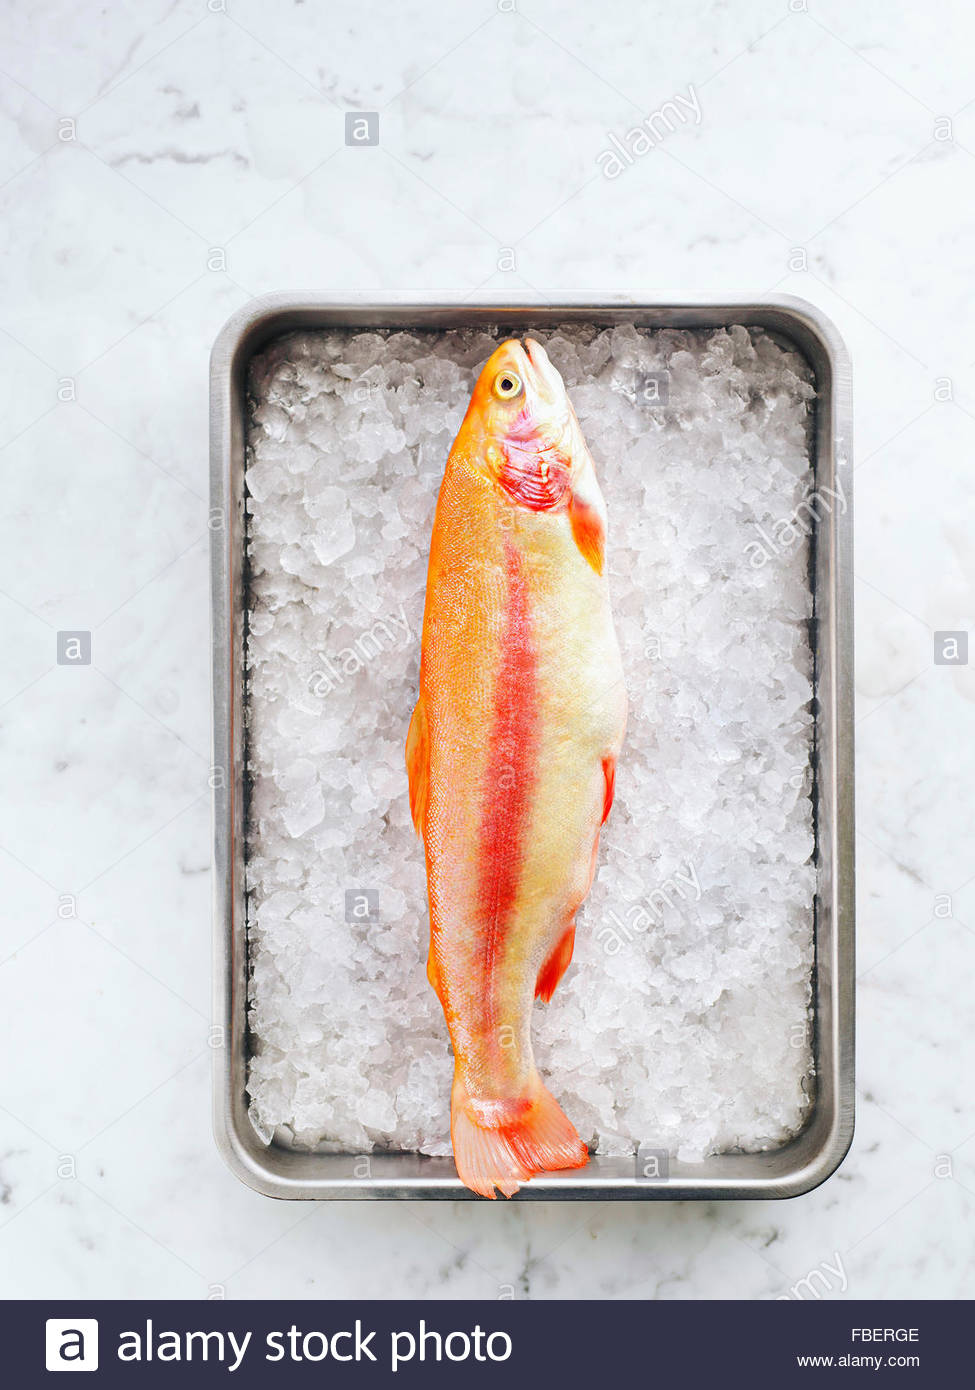 Golden rainbow trout in a pan with ice on marble table - Stock Image